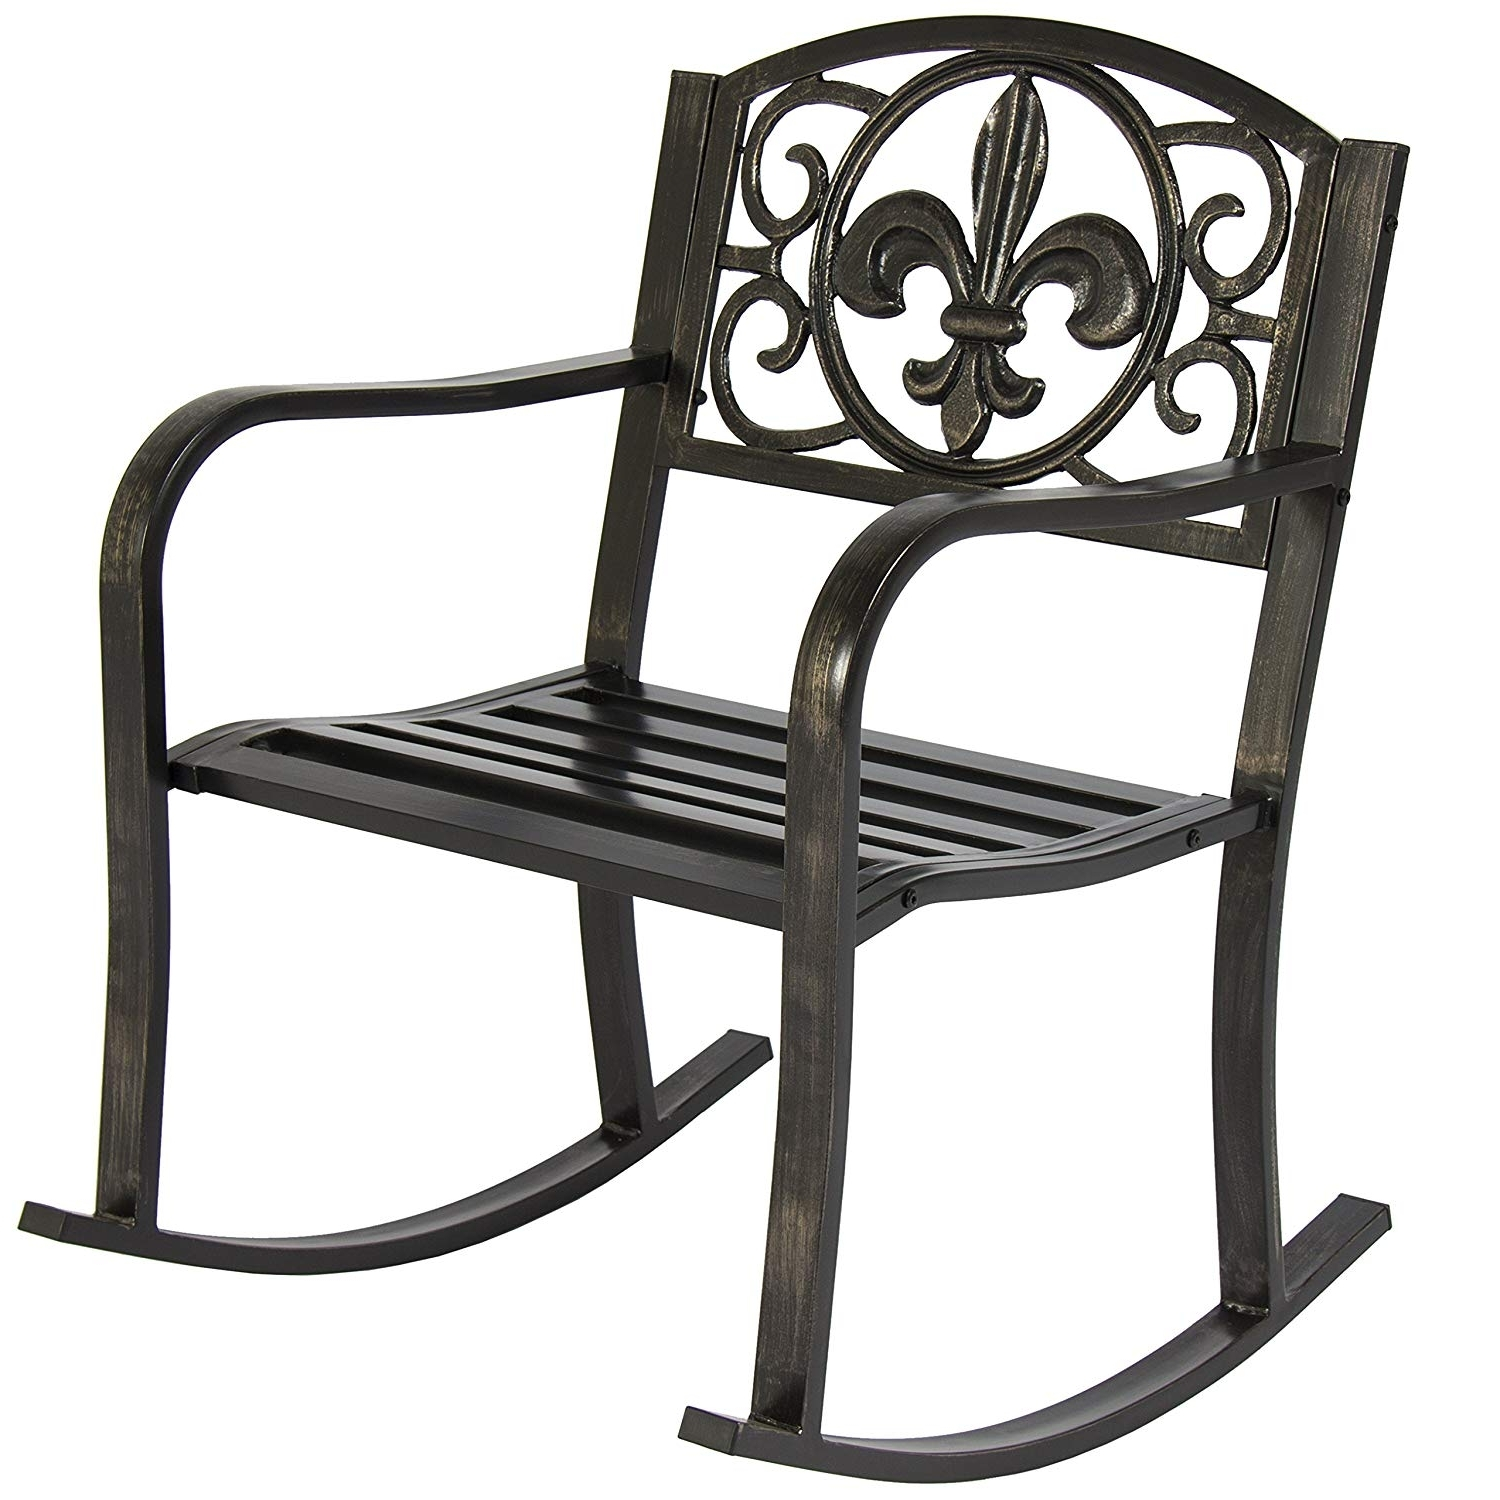 Vintage Metal Rocking Patio Chairs In Famous Amazon : Best Choice Products Metal Rocking Chair Seat For Patio (View 5 of 15)